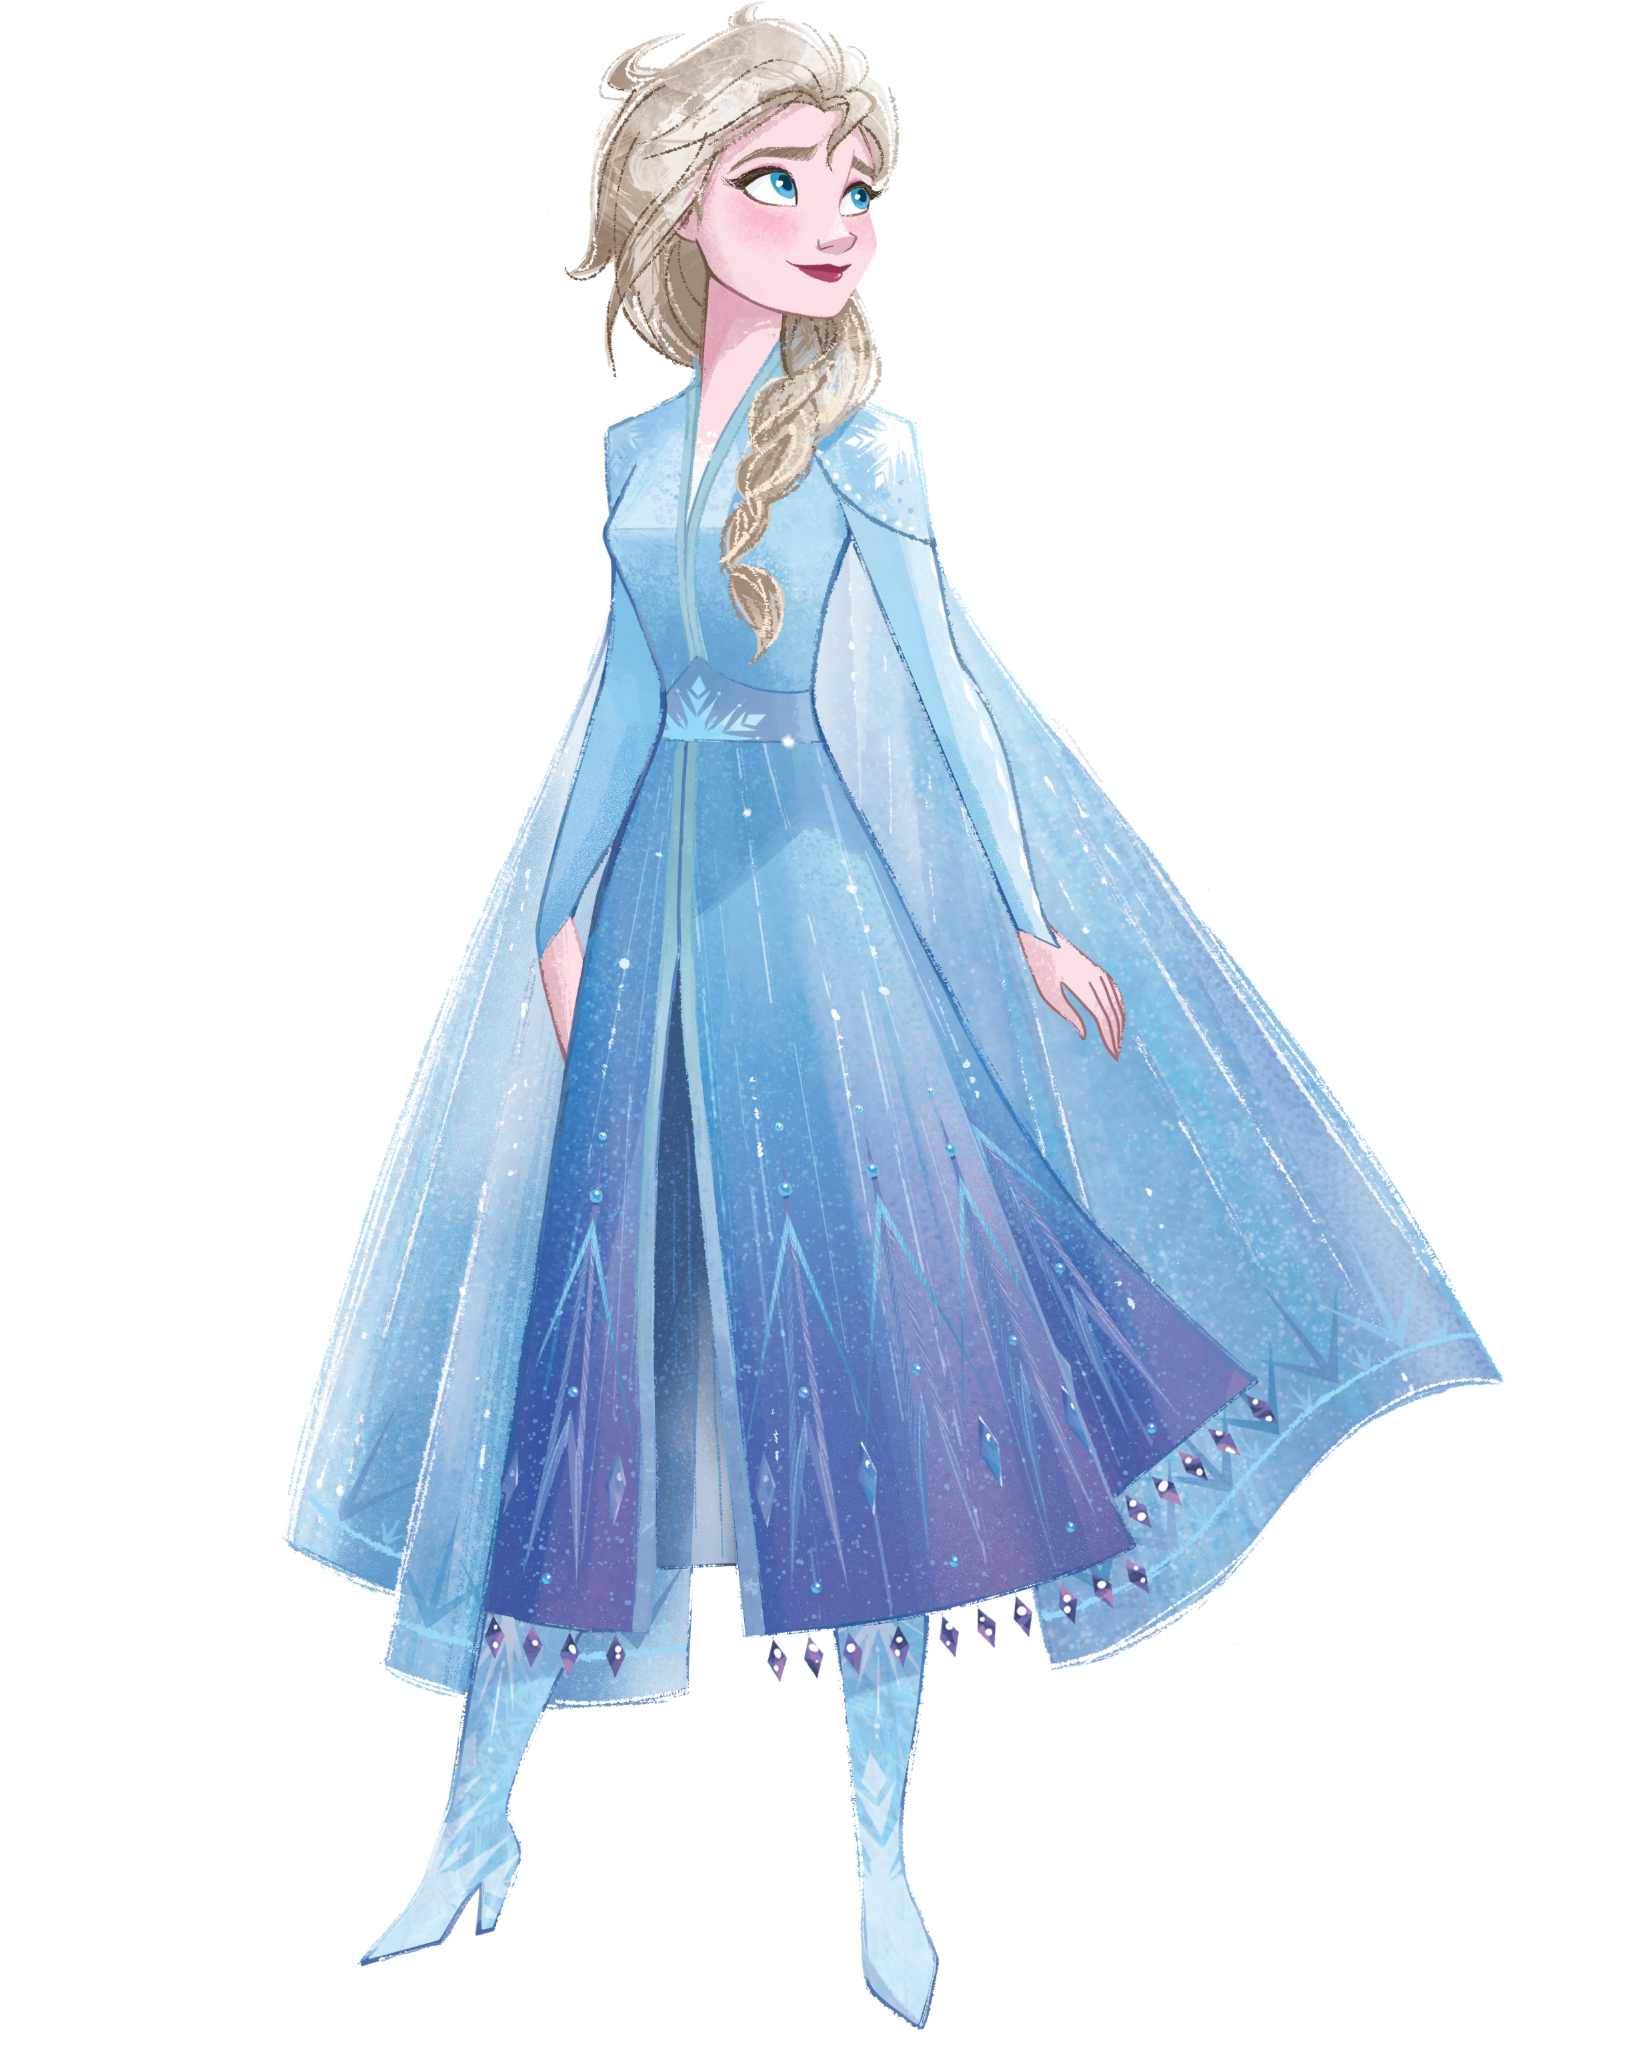 We Ve Made A Collection Of Official Frozen 2 Clipart Images For You They Are In Png For In 2020 Disney Princess Fashion Disney Princess Dresses Disney Princess Frozen